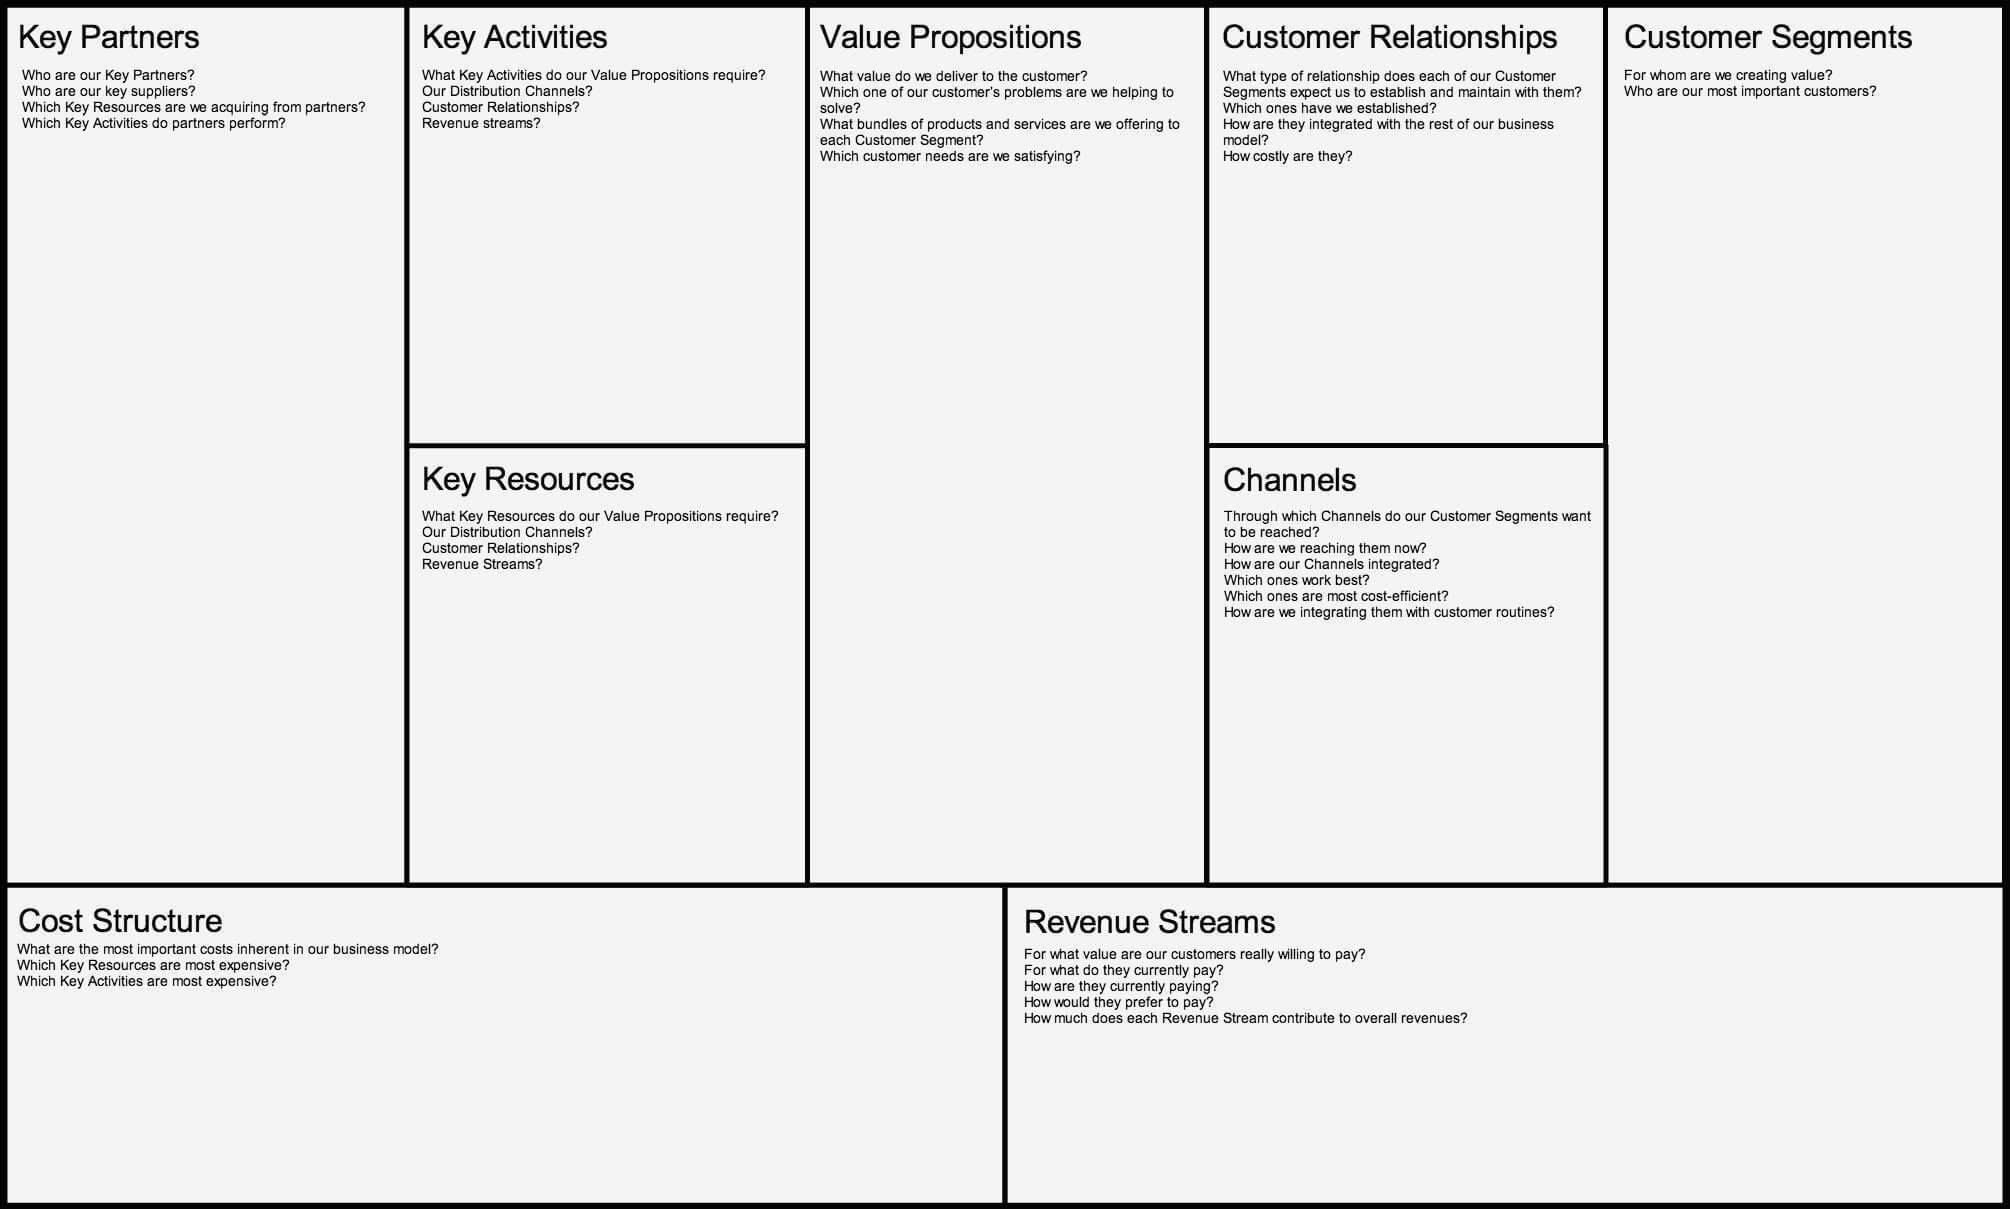 Business Model Canvas Template Word - Caquetapositivo Pertaining To Business Canvas Word Template